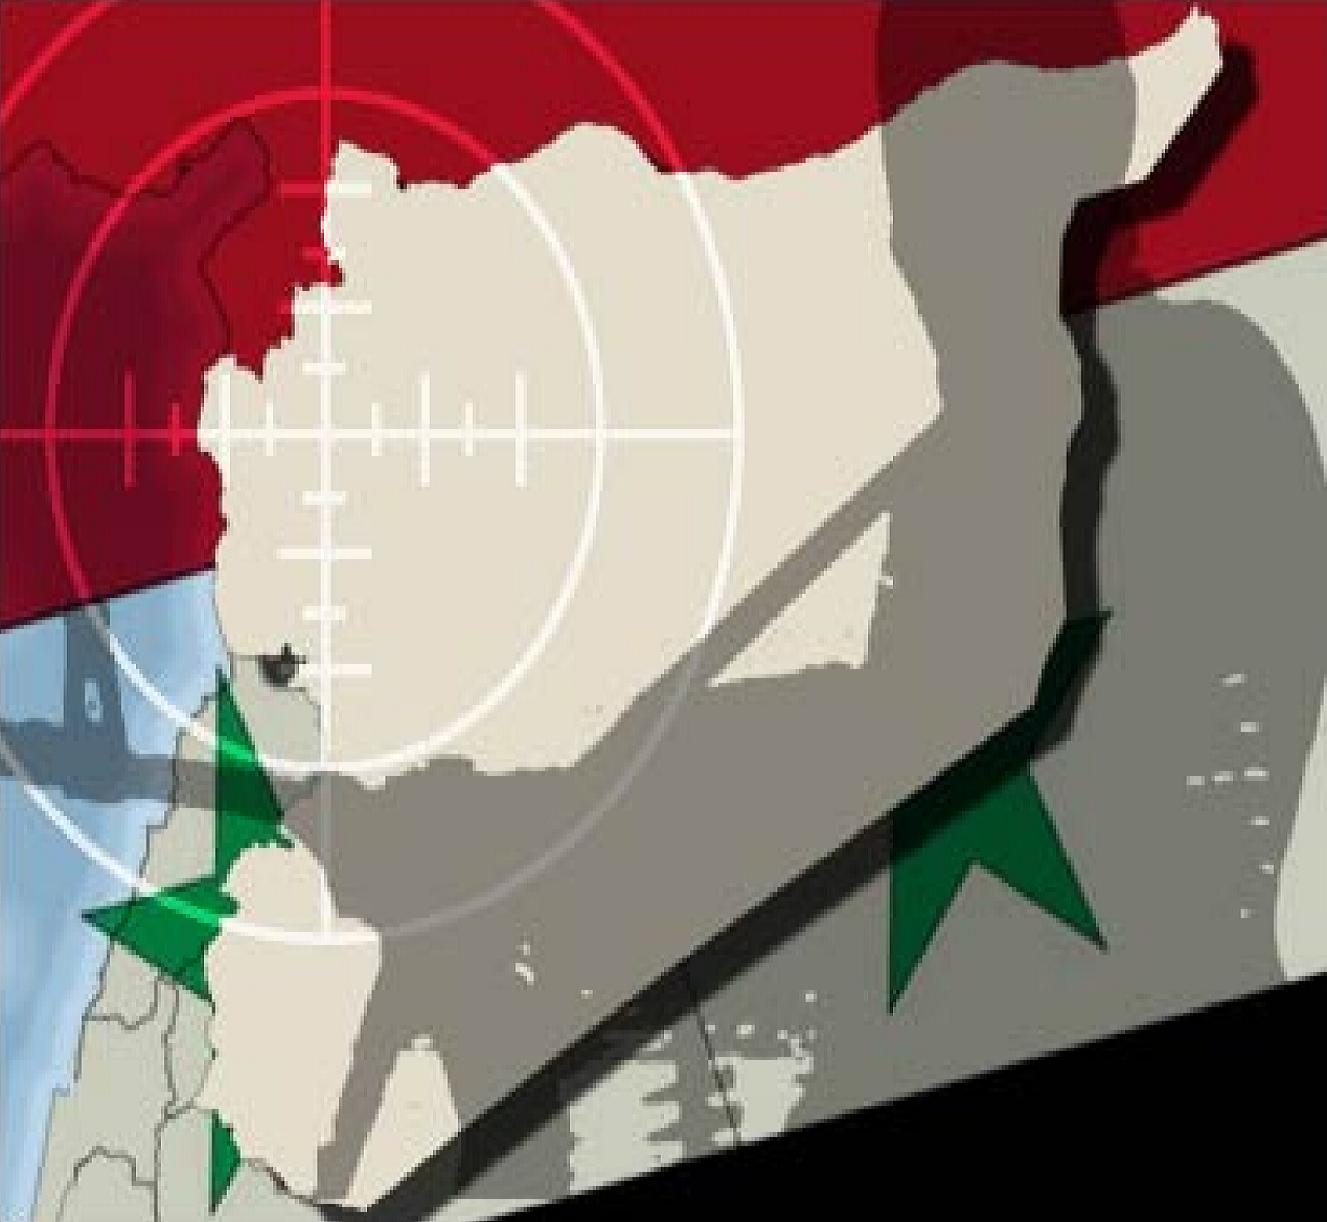 Syria: Washington's Latest War Crime